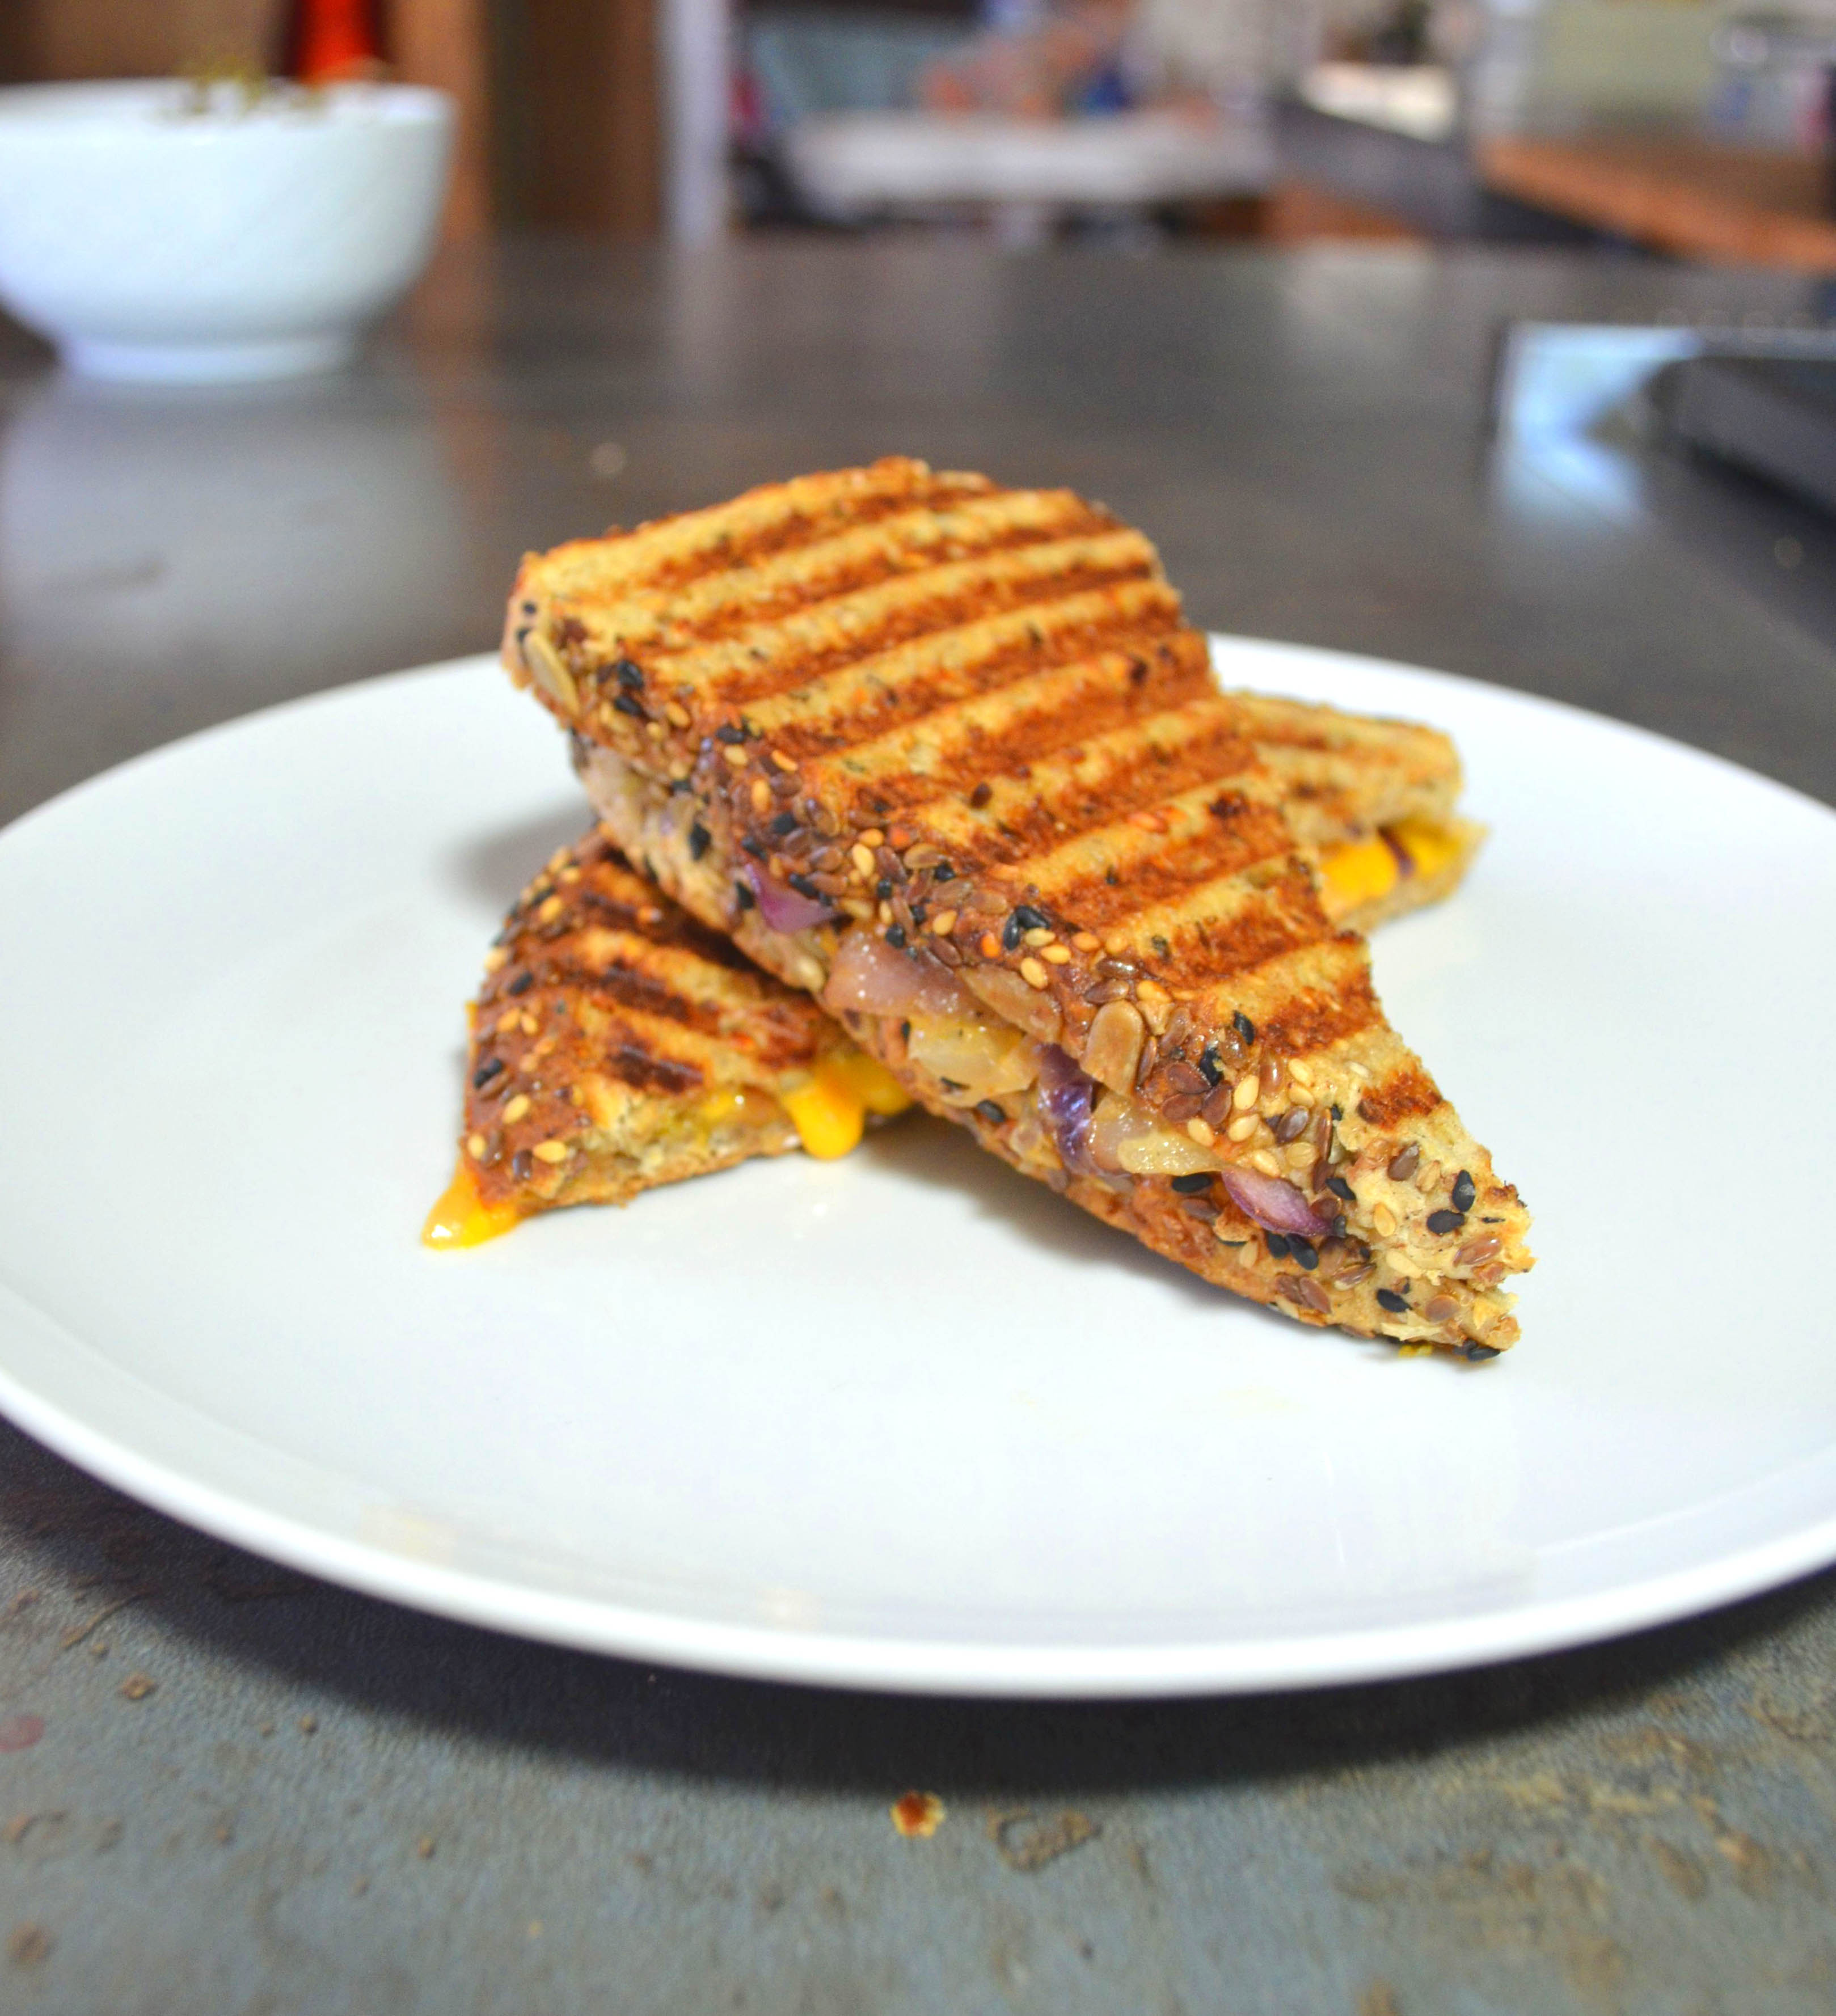 grilled cheddar cheese on whole grain bread